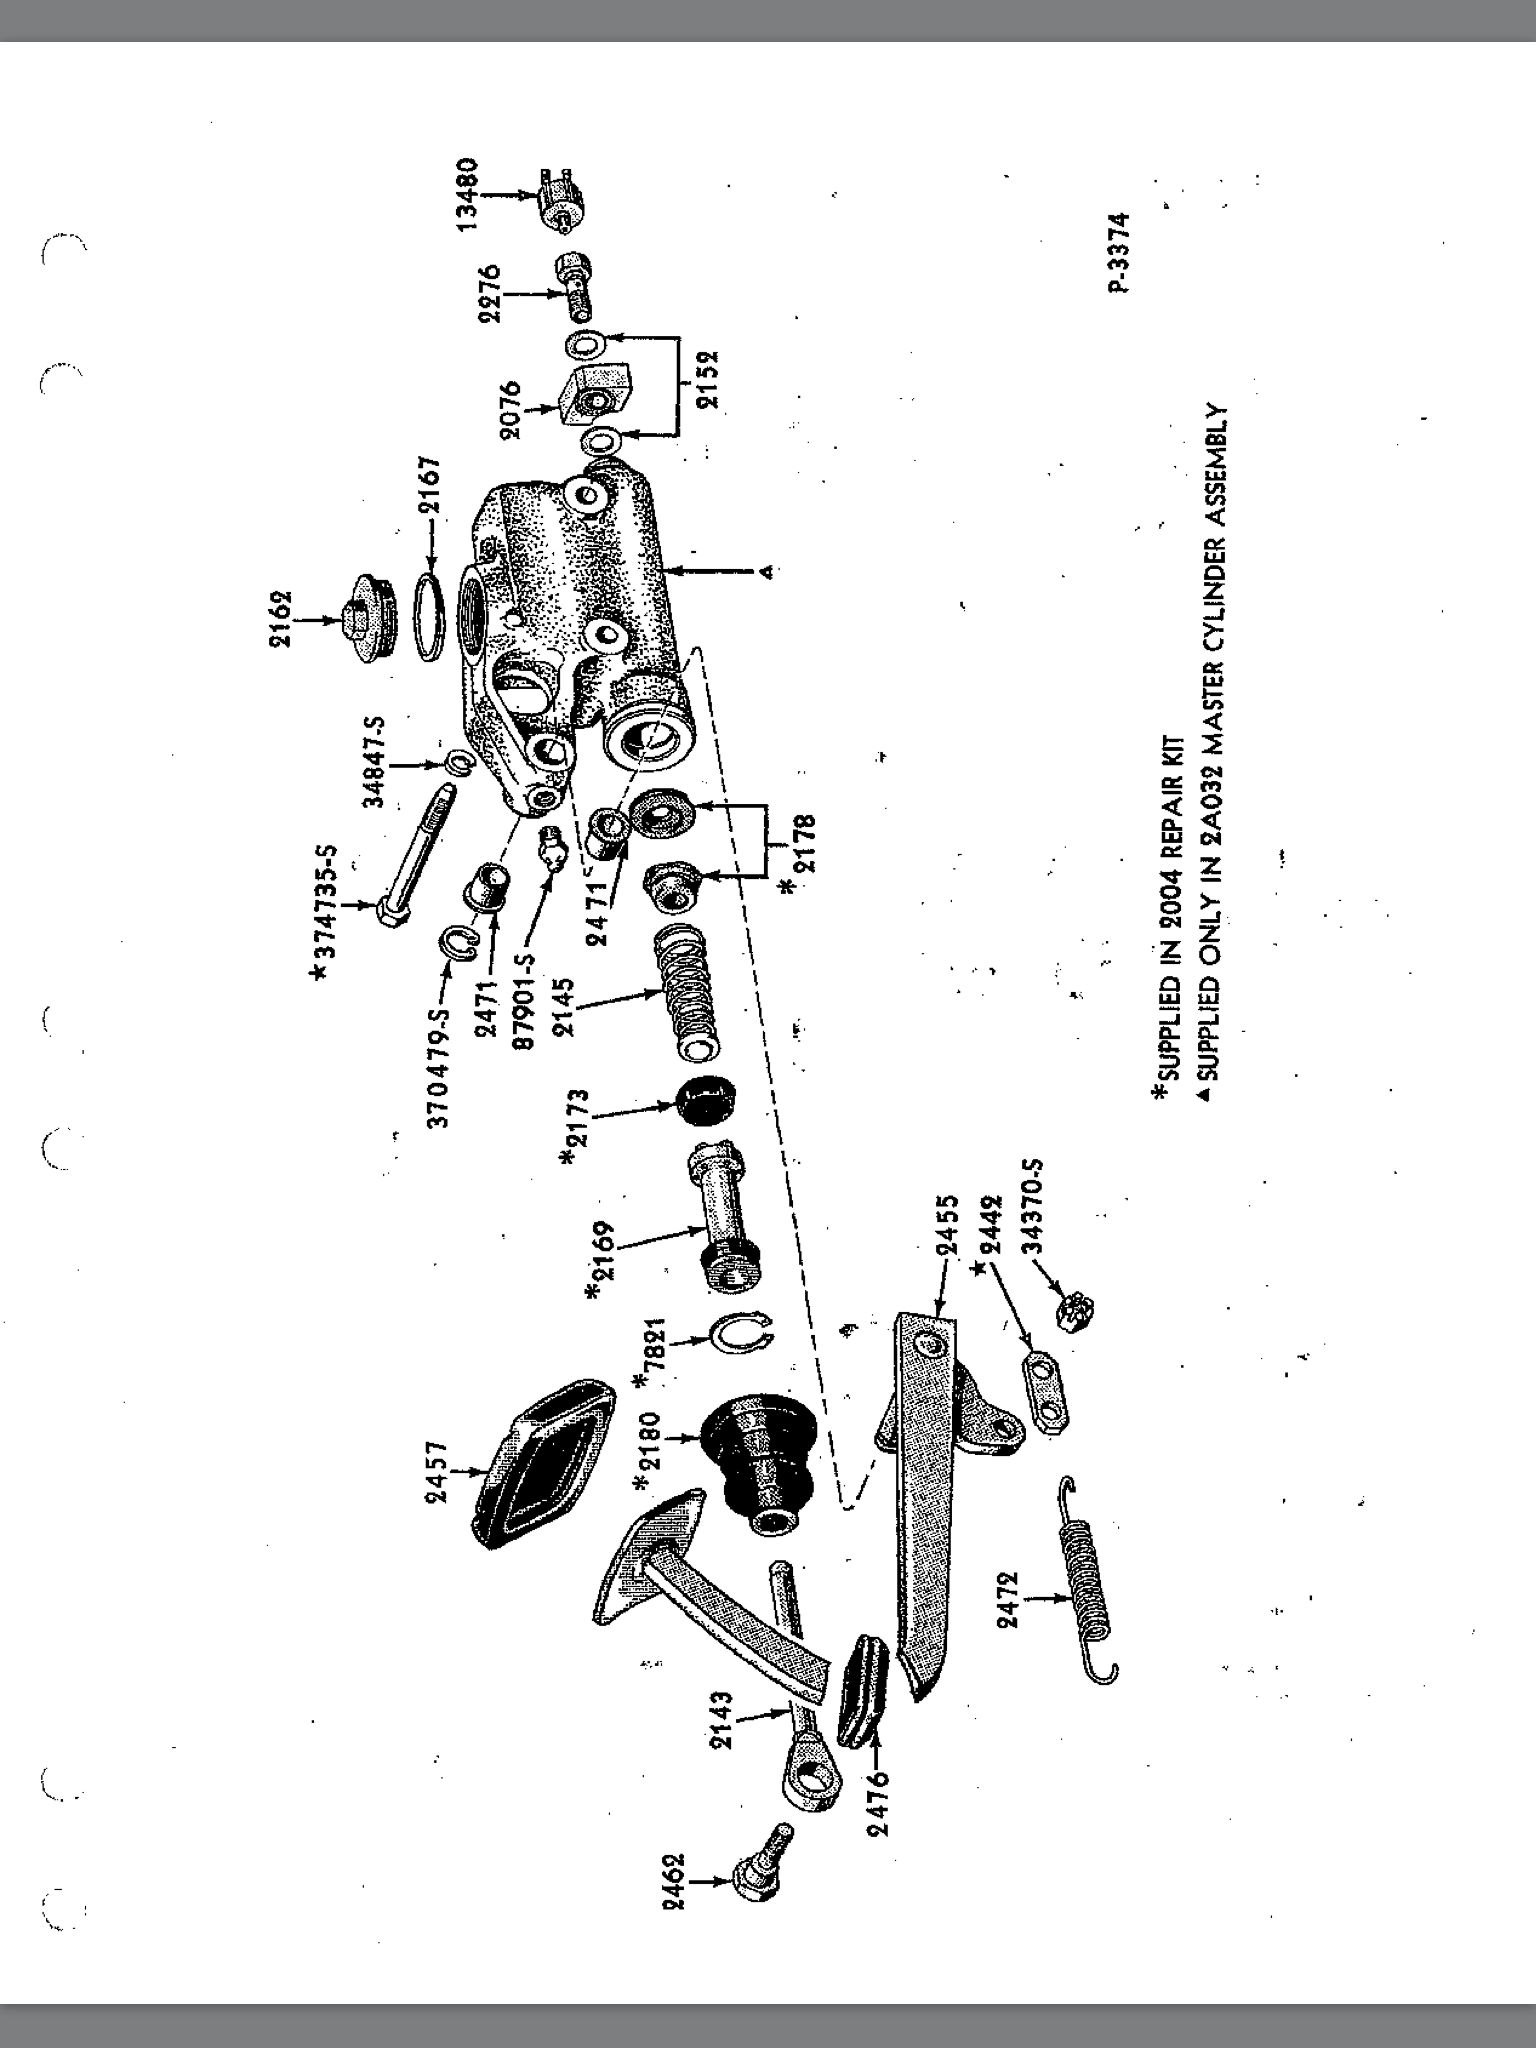 Master Cylinder Exploded View